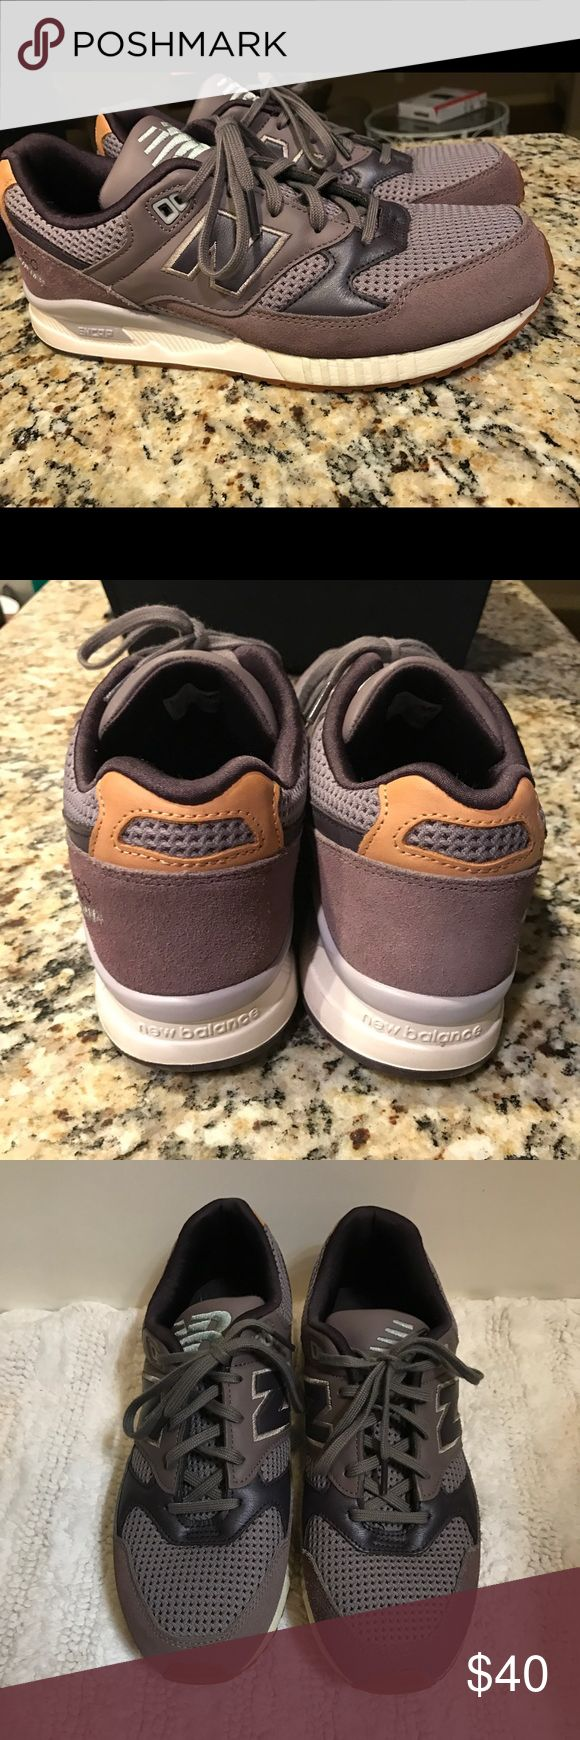 New Balance Women's size 11 Great condition and so cute! Only wore these once and sadly they did not fit right so that's why I'm getting rid of them! They are a greyish purple color and adorable!! New Balance Shoes Sneakers